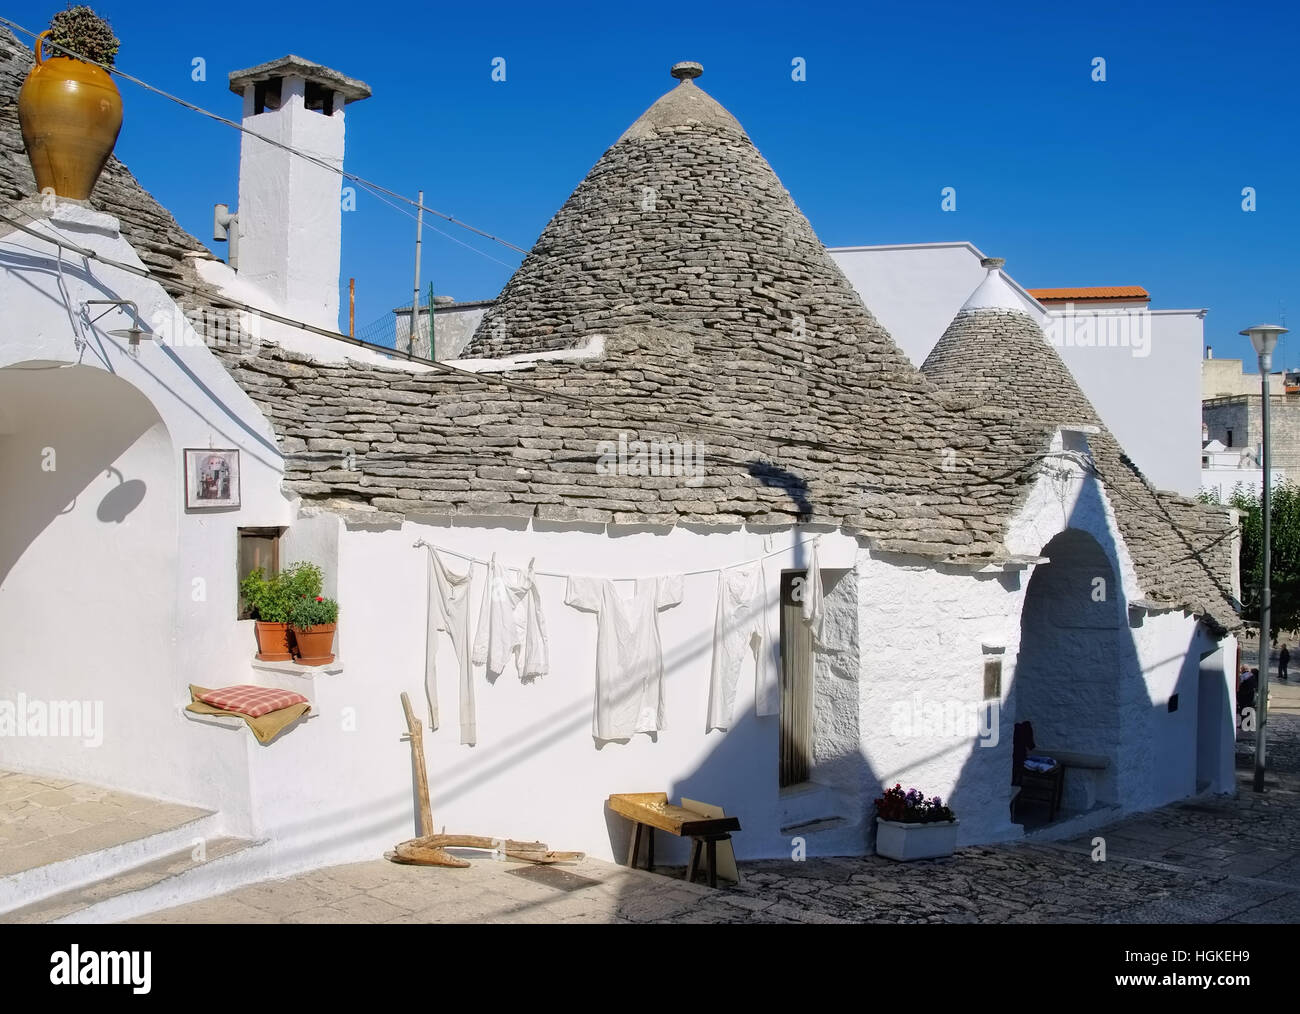 Trulli Häuser In Alberobello, Italien   Stone Trulli Cottages In  Alberobello, Italy   Stock